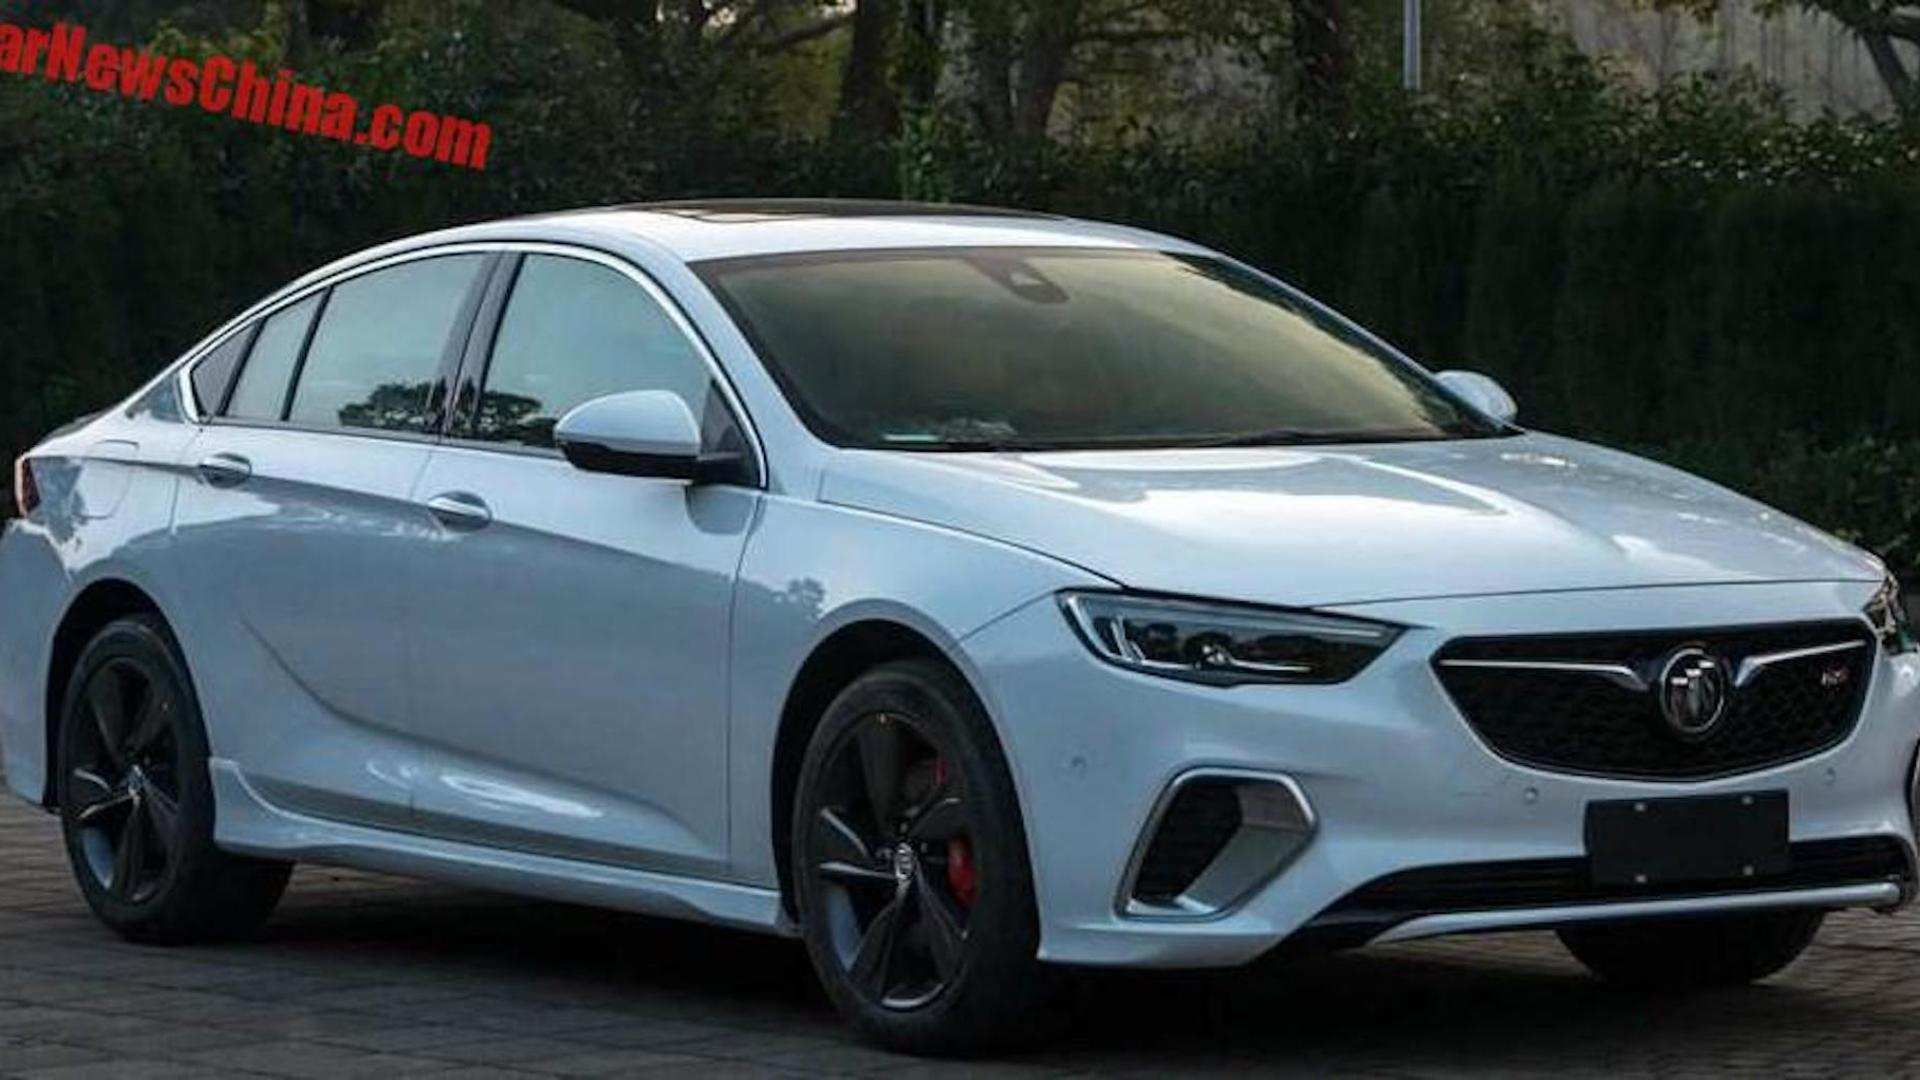 31 Great New 2019 Buick Regal Gs Review Specs Performance by New 2019 Buick Regal Gs Review Specs